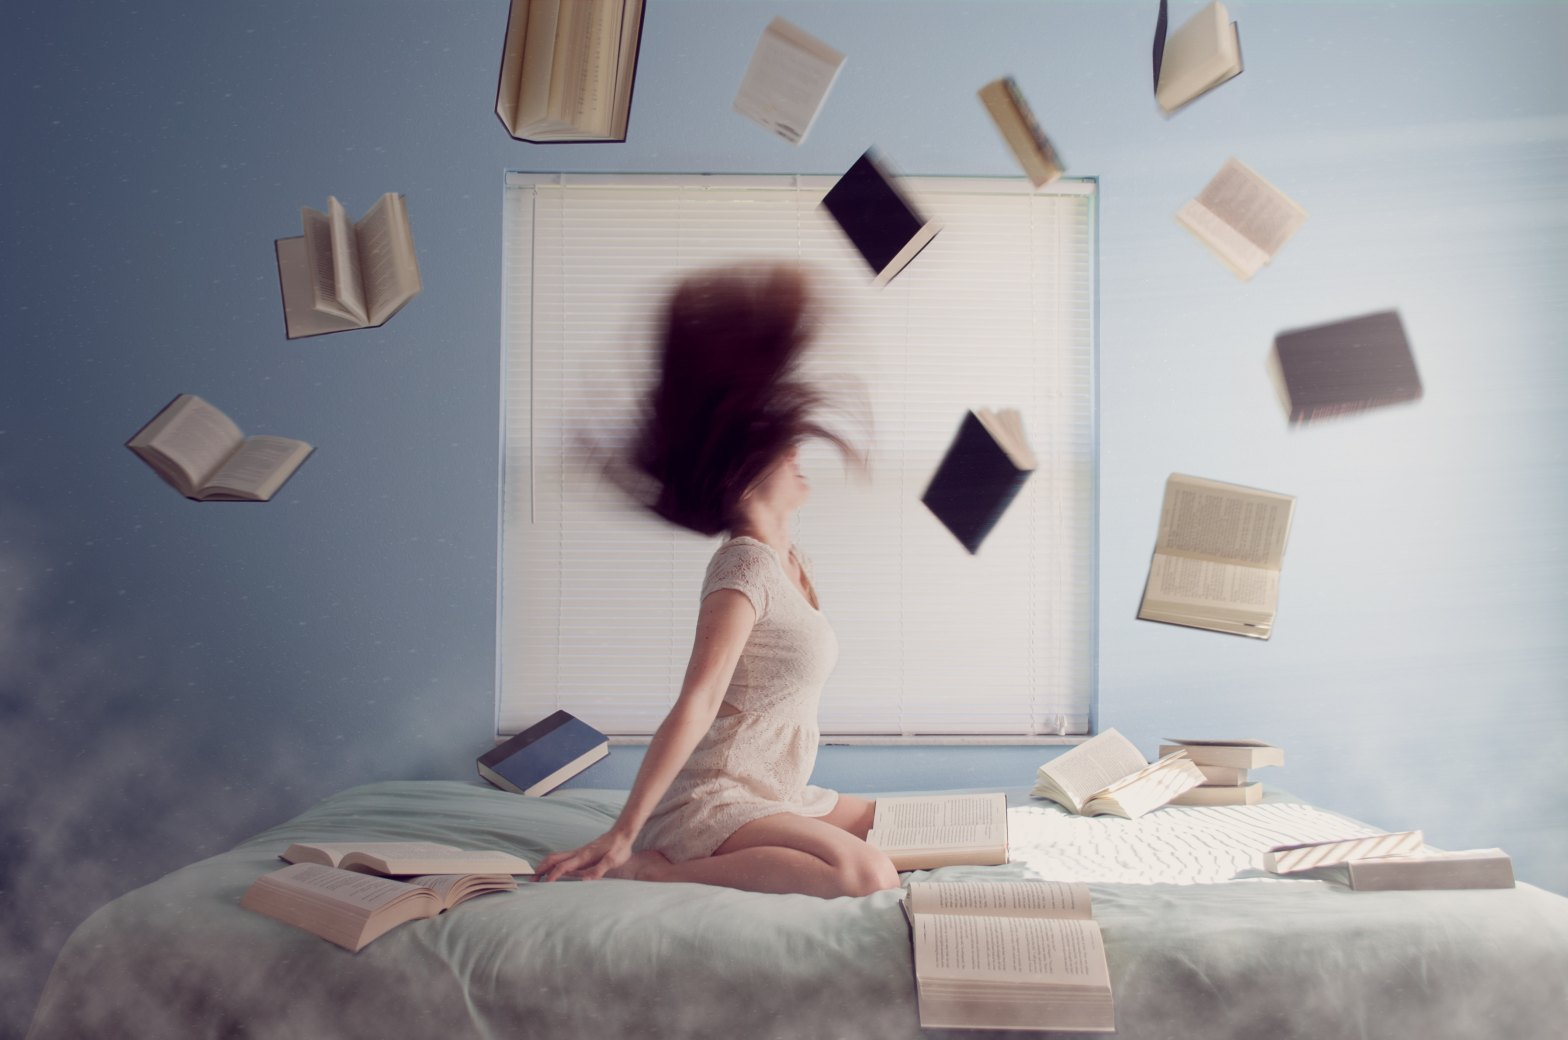 A woman on her bed angrily swinging her head while books float around her Photo by Lacie Slezak on Unsplash